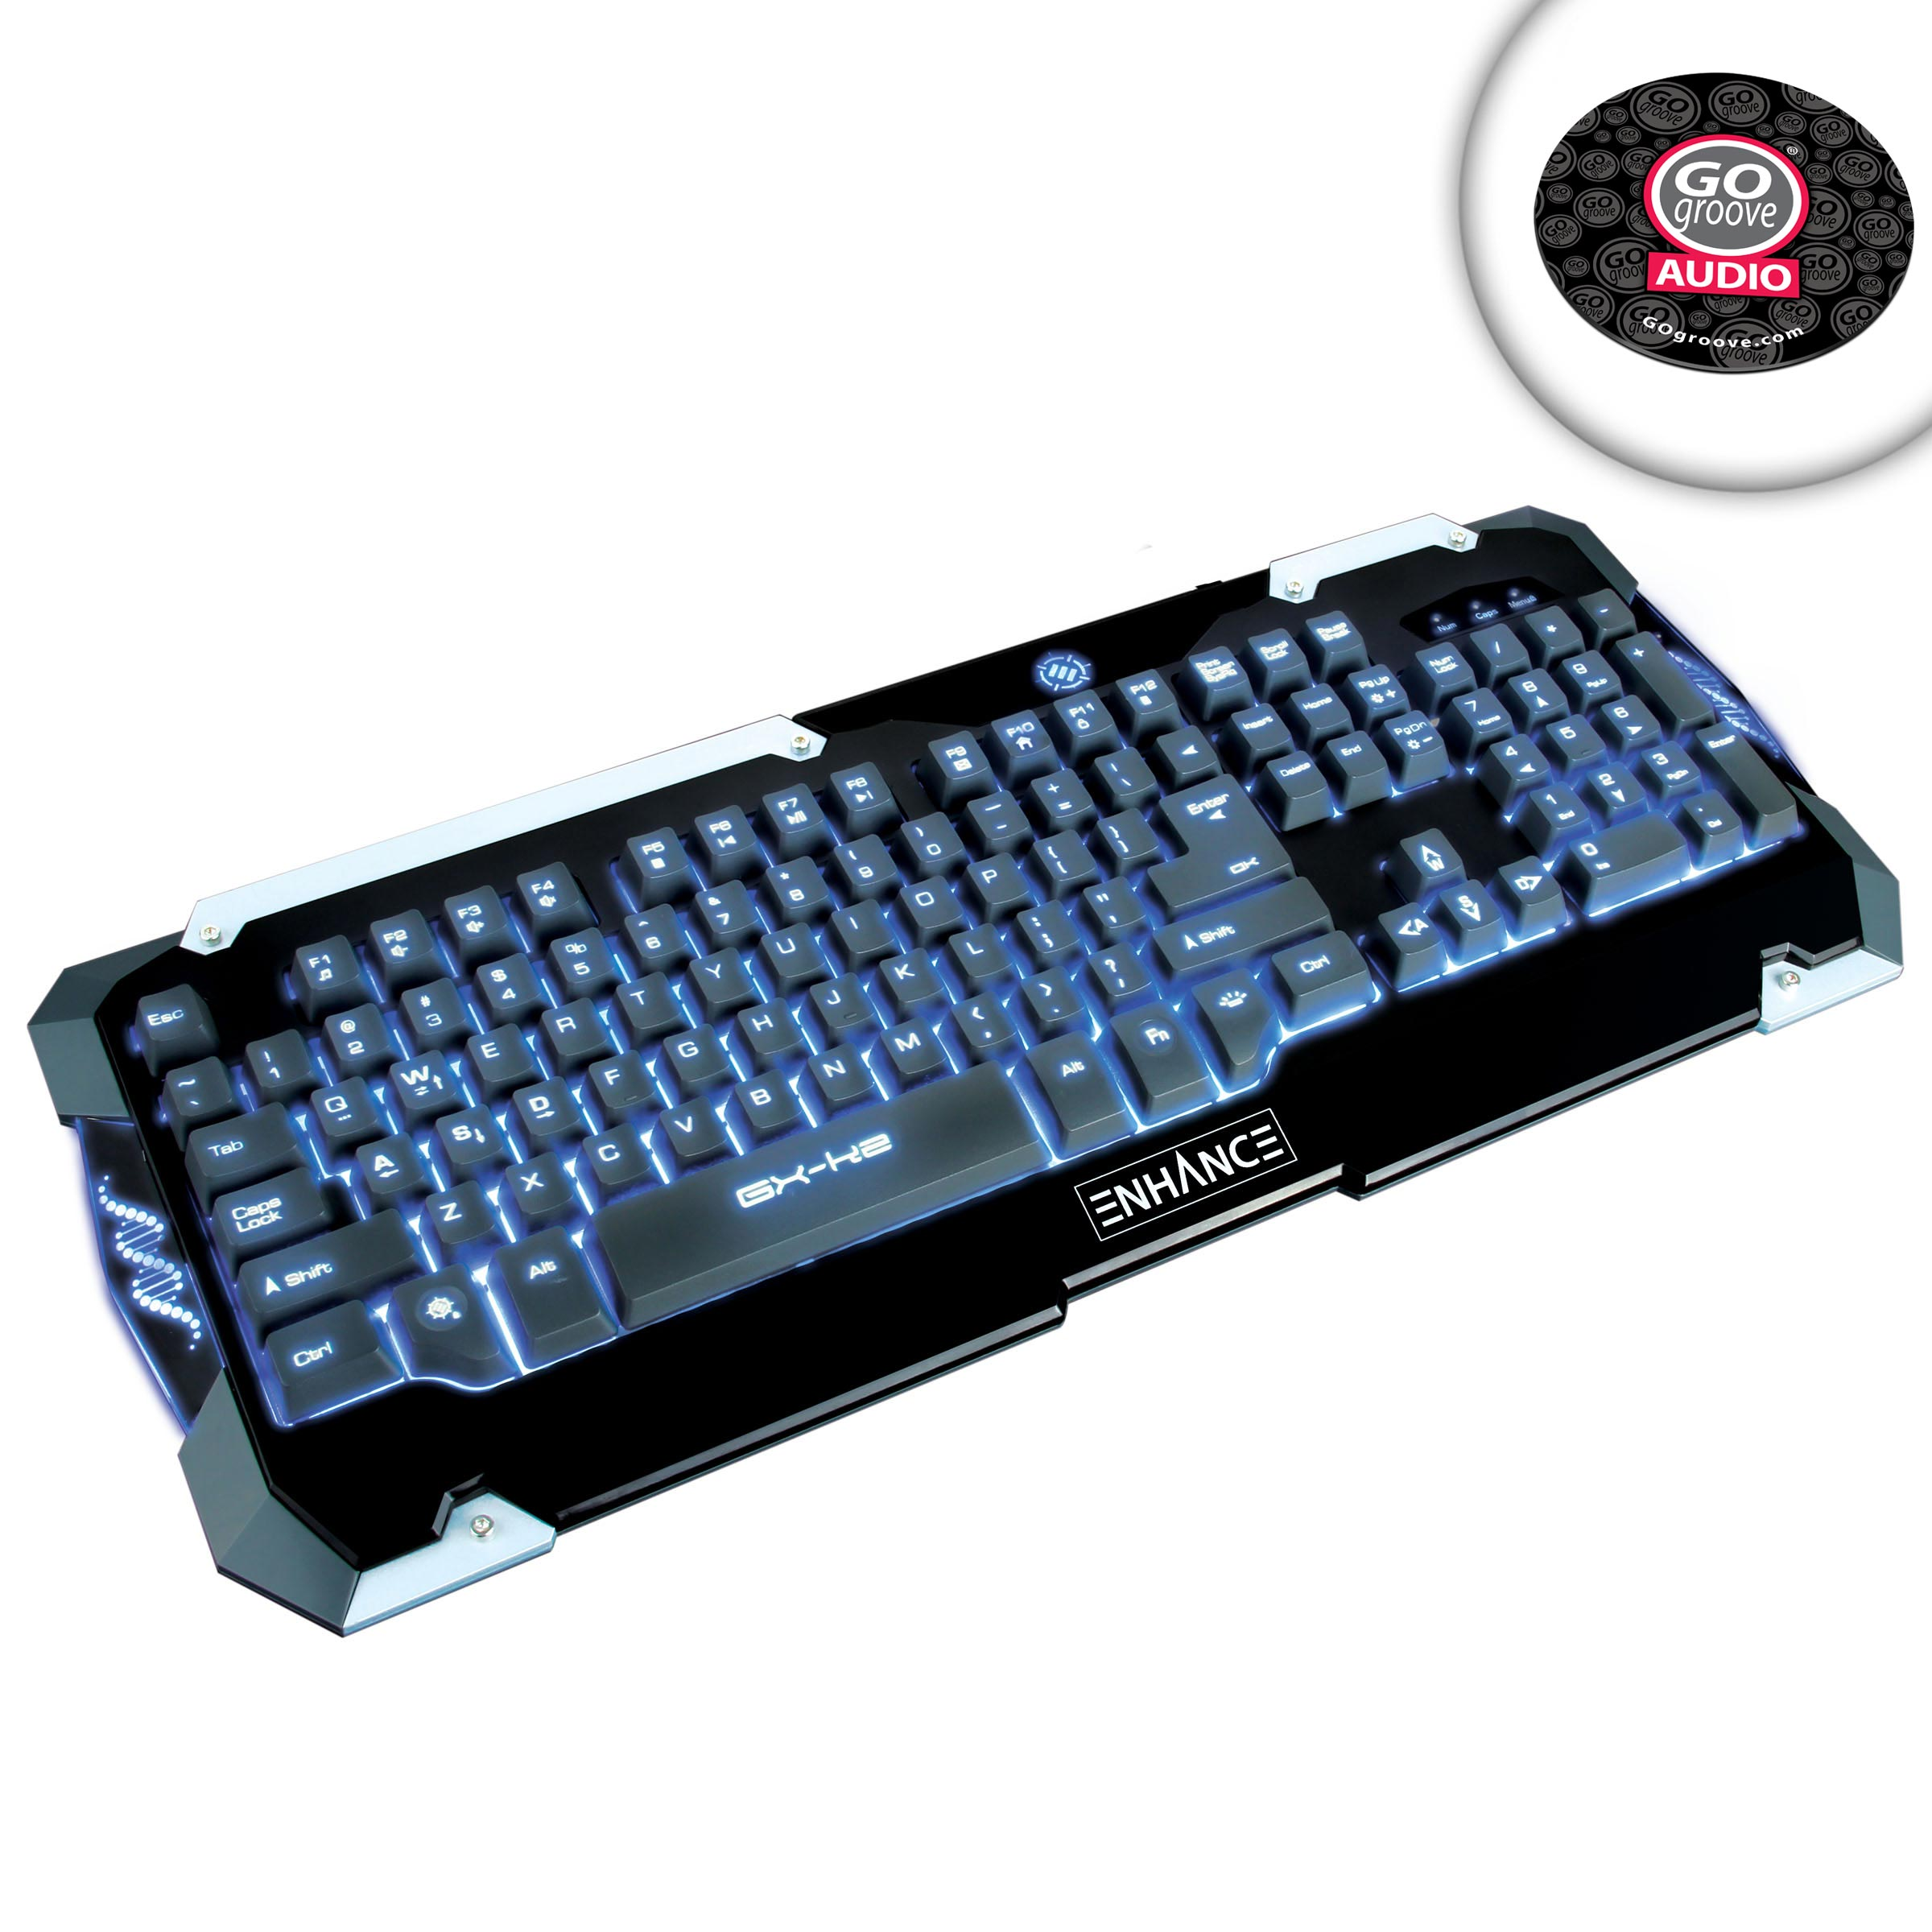 led gaming keyboard with hybrid switches multimedia hotkeys color backlights ebay. Black Bedroom Furniture Sets. Home Design Ideas